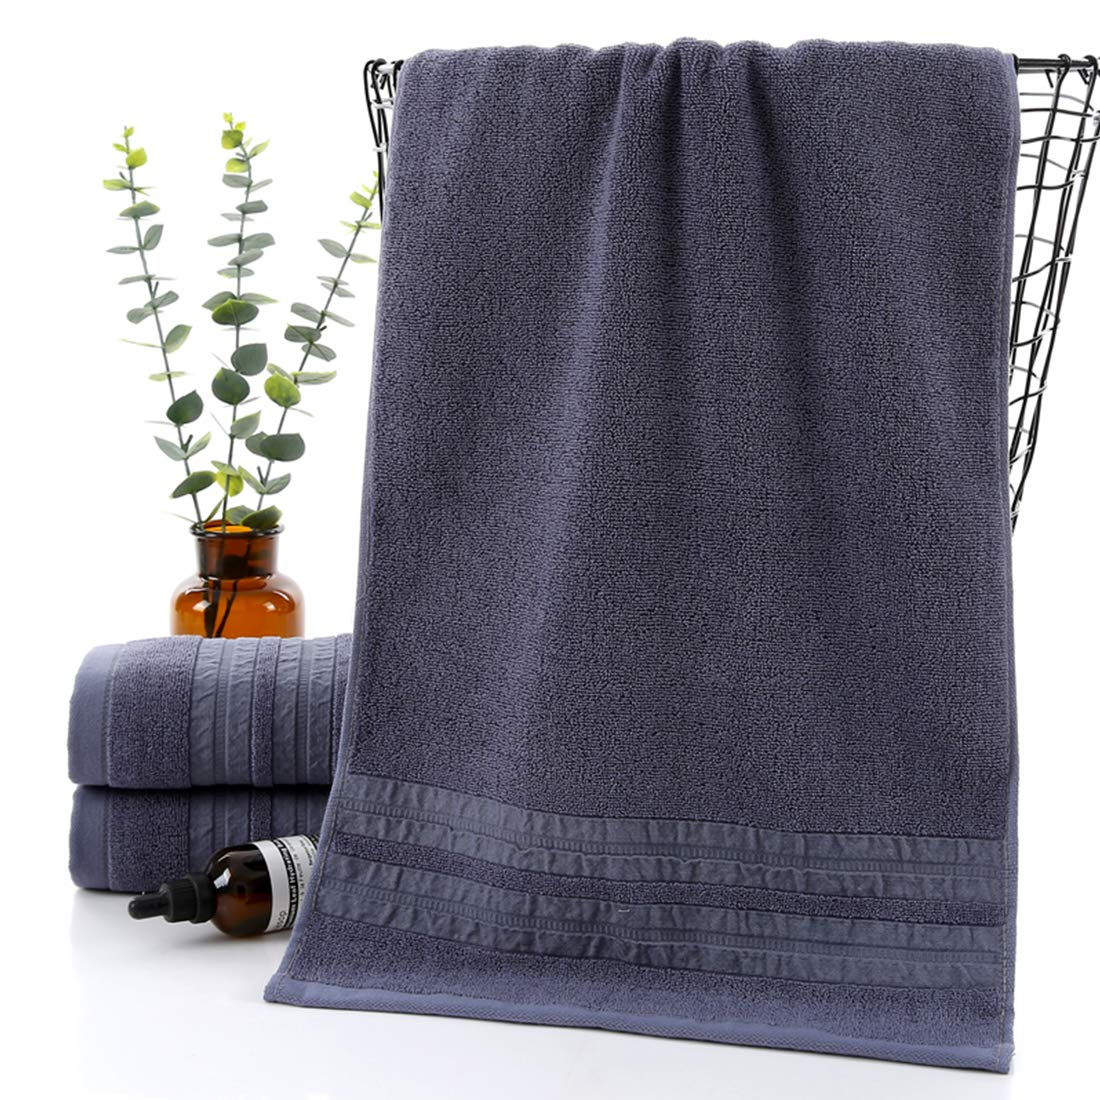 Green Premium Towel Set 100/% Cotton Striped Bath Towels Hand Towels Bathroom Decor 3 Piece